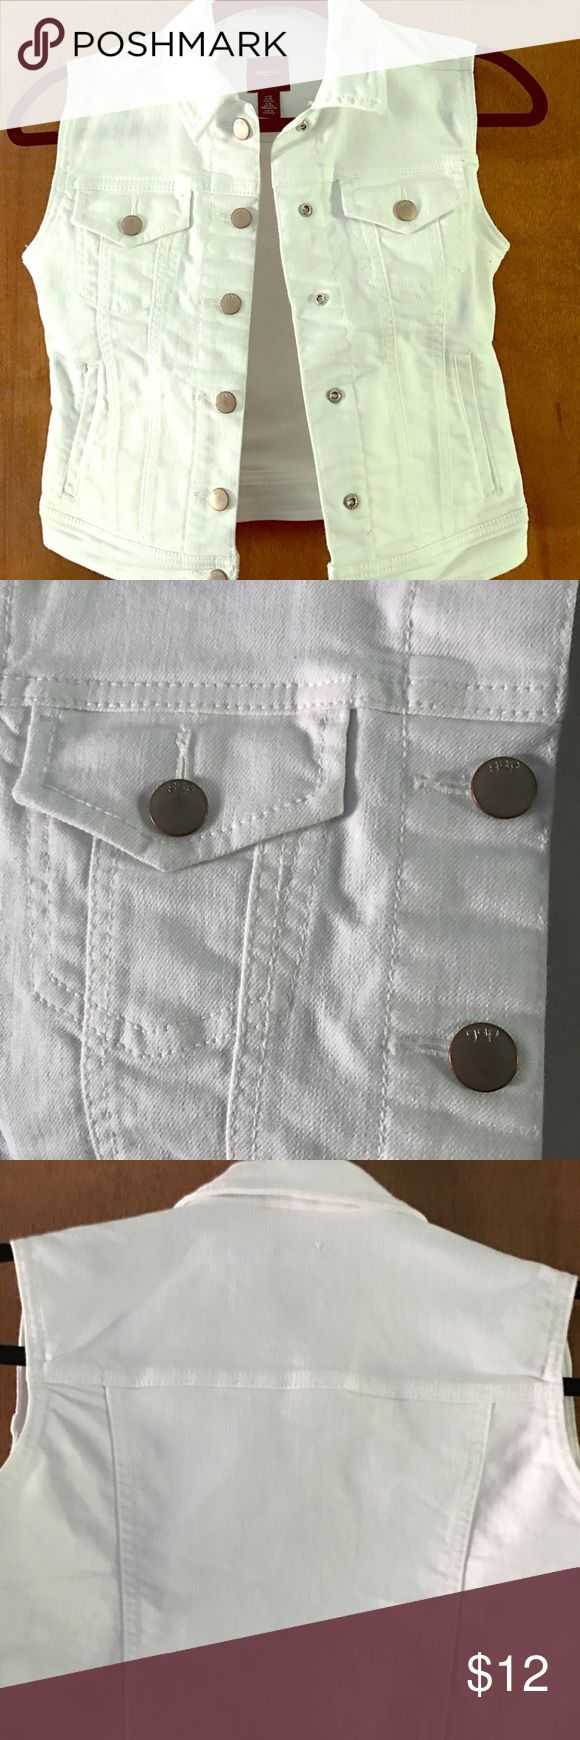 ! Gap Kid XL white jean vest-worn a few times. 😎 Cleaning out my daughters closet!  White jean vest with silver metal buttons. GAP Jackets & Coats Vests